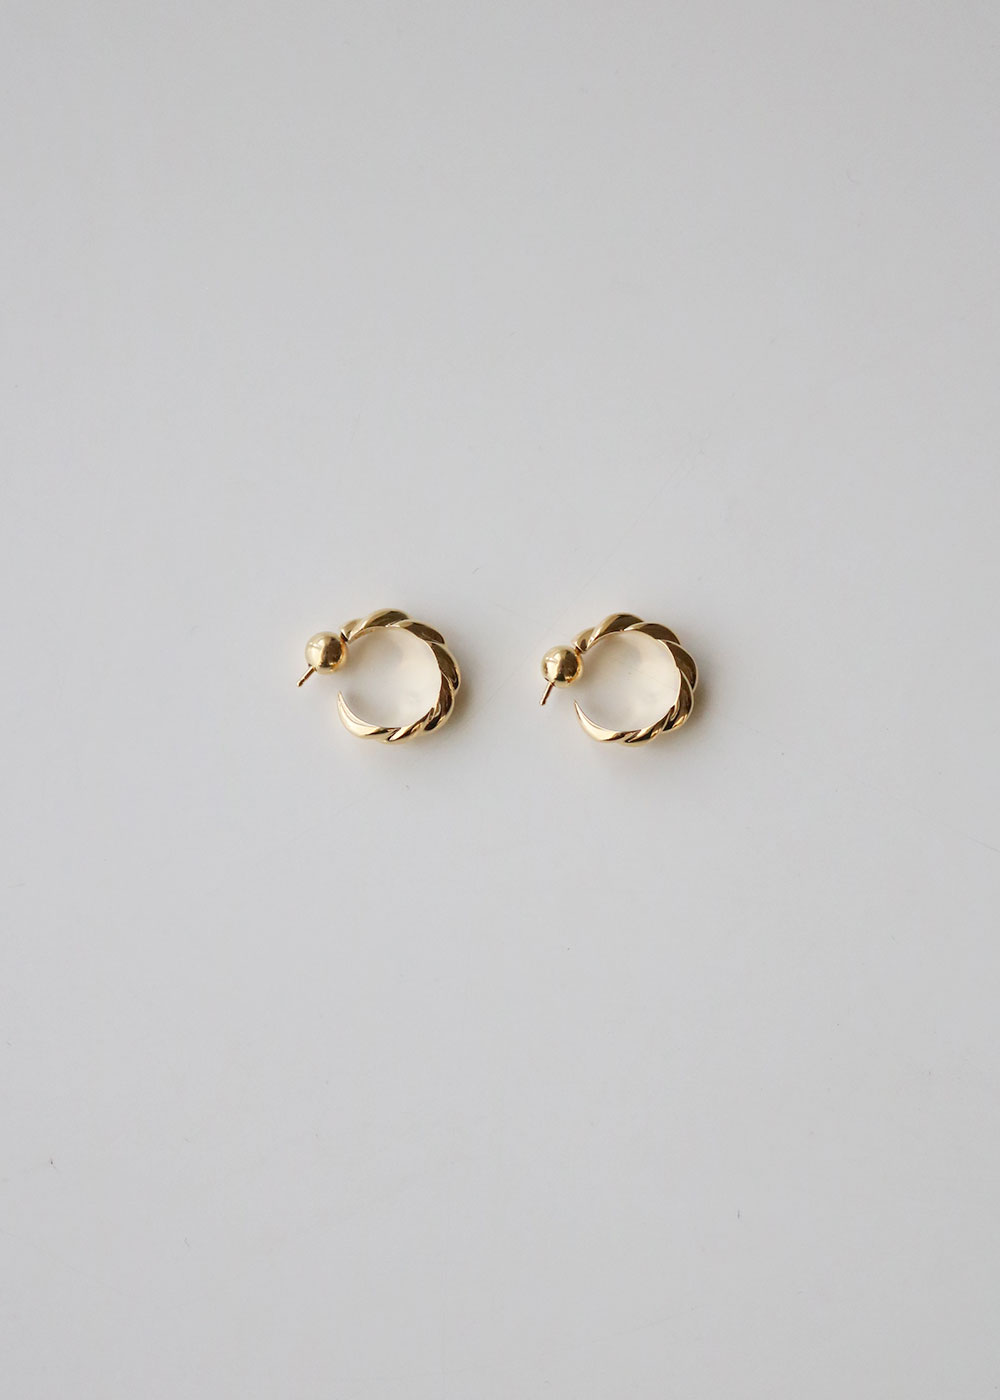 GOLD SMALL ROPE EARRINGS